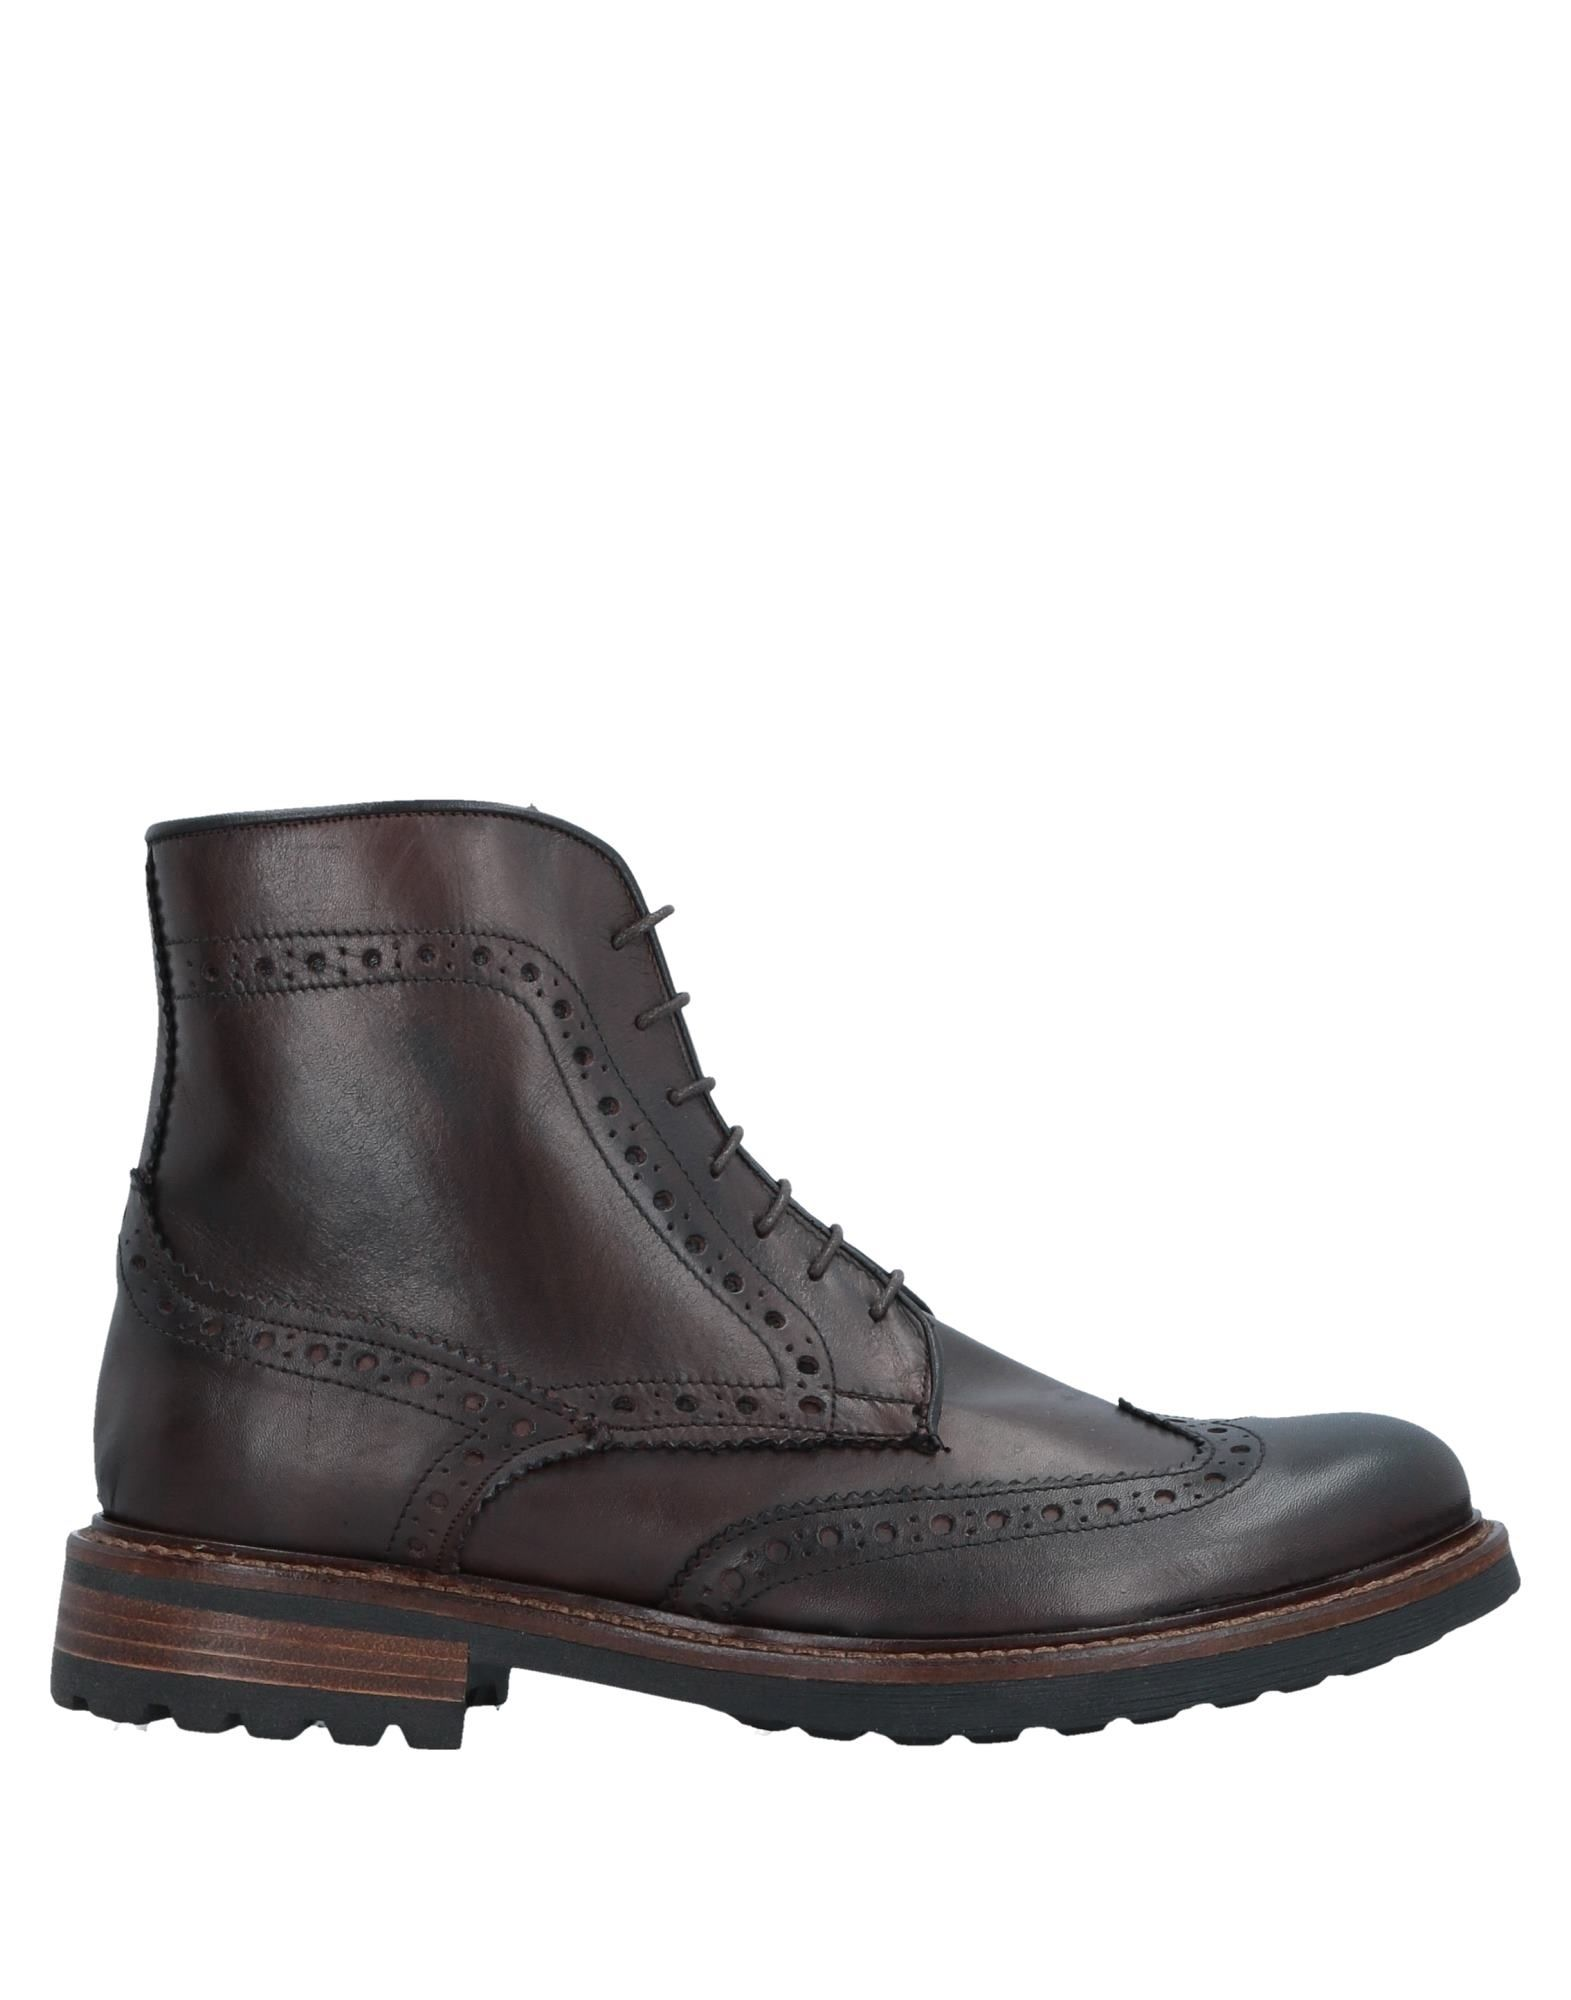 DAMA Ankle Boots in Dark Brown